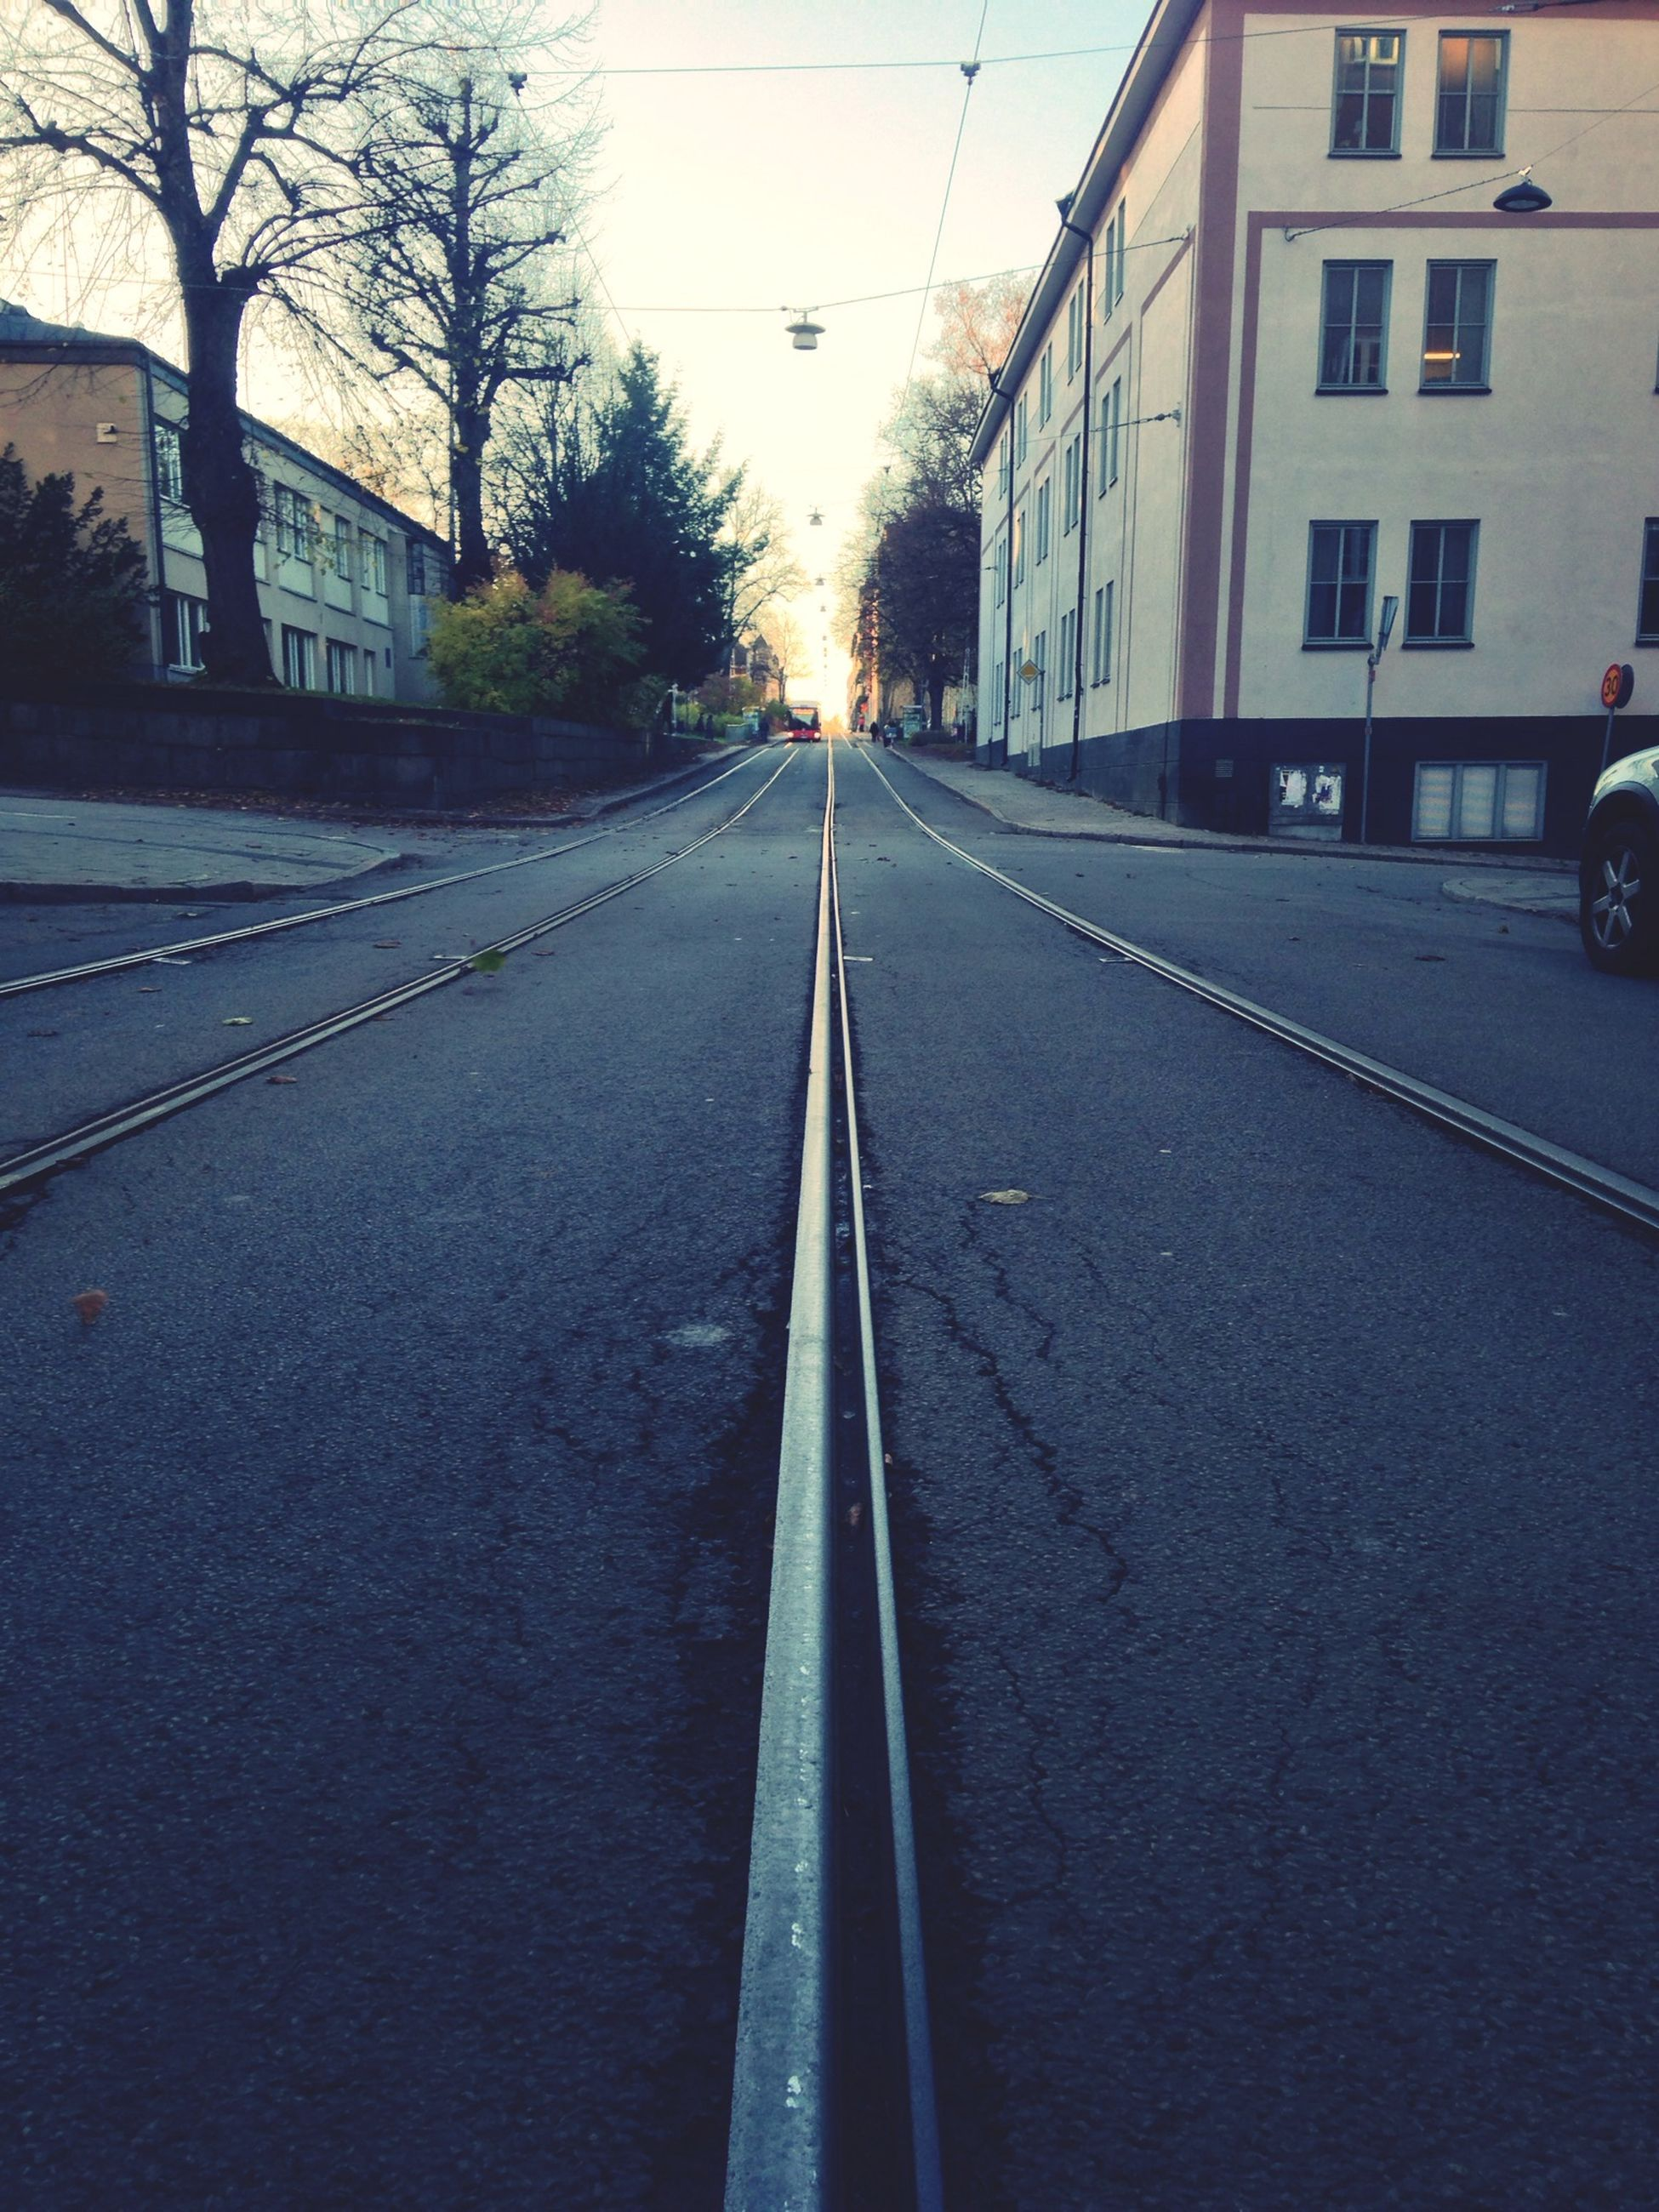 transportation, architecture, built structure, mode of transport, building exterior, the way forward, land vehicle, car, road, high angle view, city, street, diminishing perspective, road marking, railroad track, on the move, travel, vanishing point, day, sky